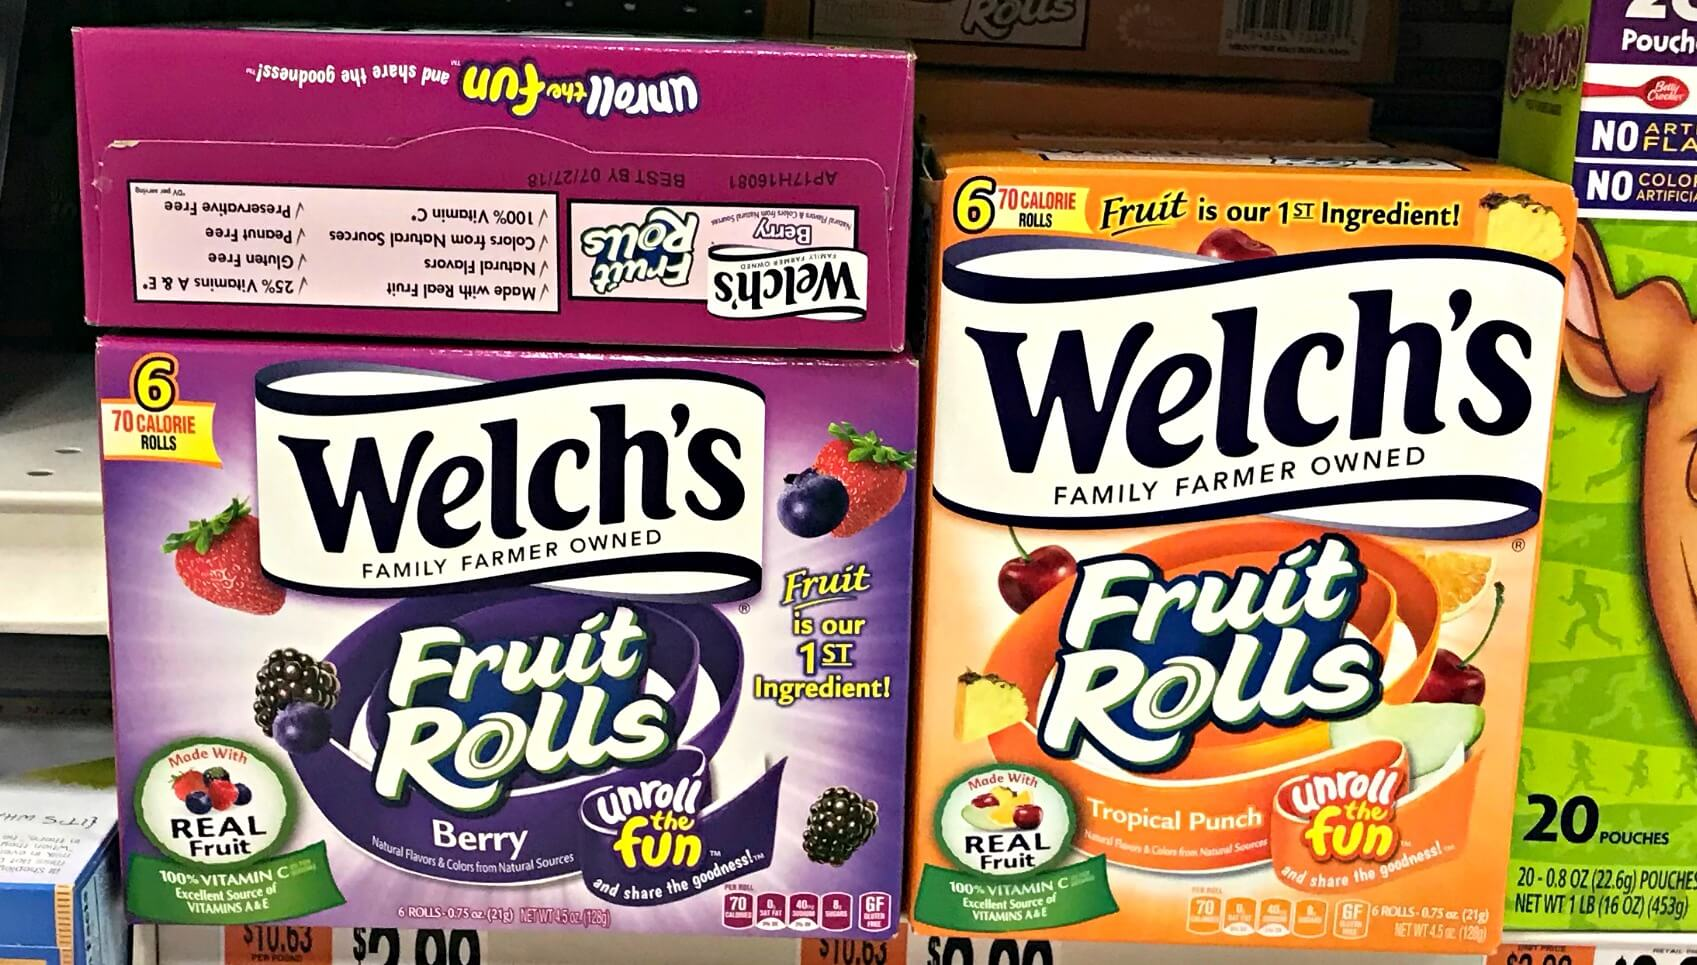 Welch's Fruit Snack Coupons February 2019